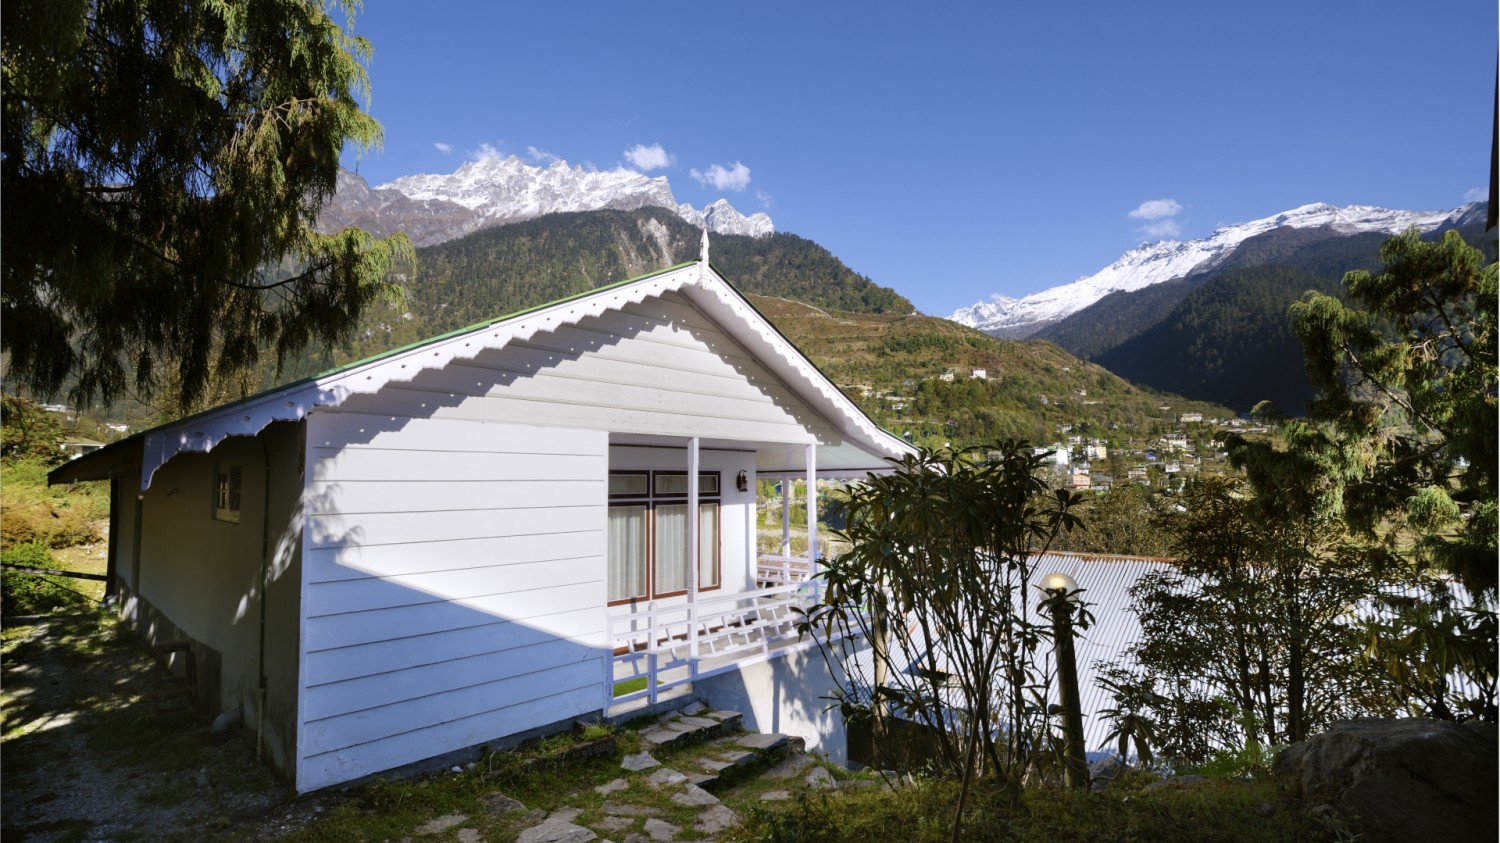 Exterior View 5 at Summit Alpine Resort Lachung